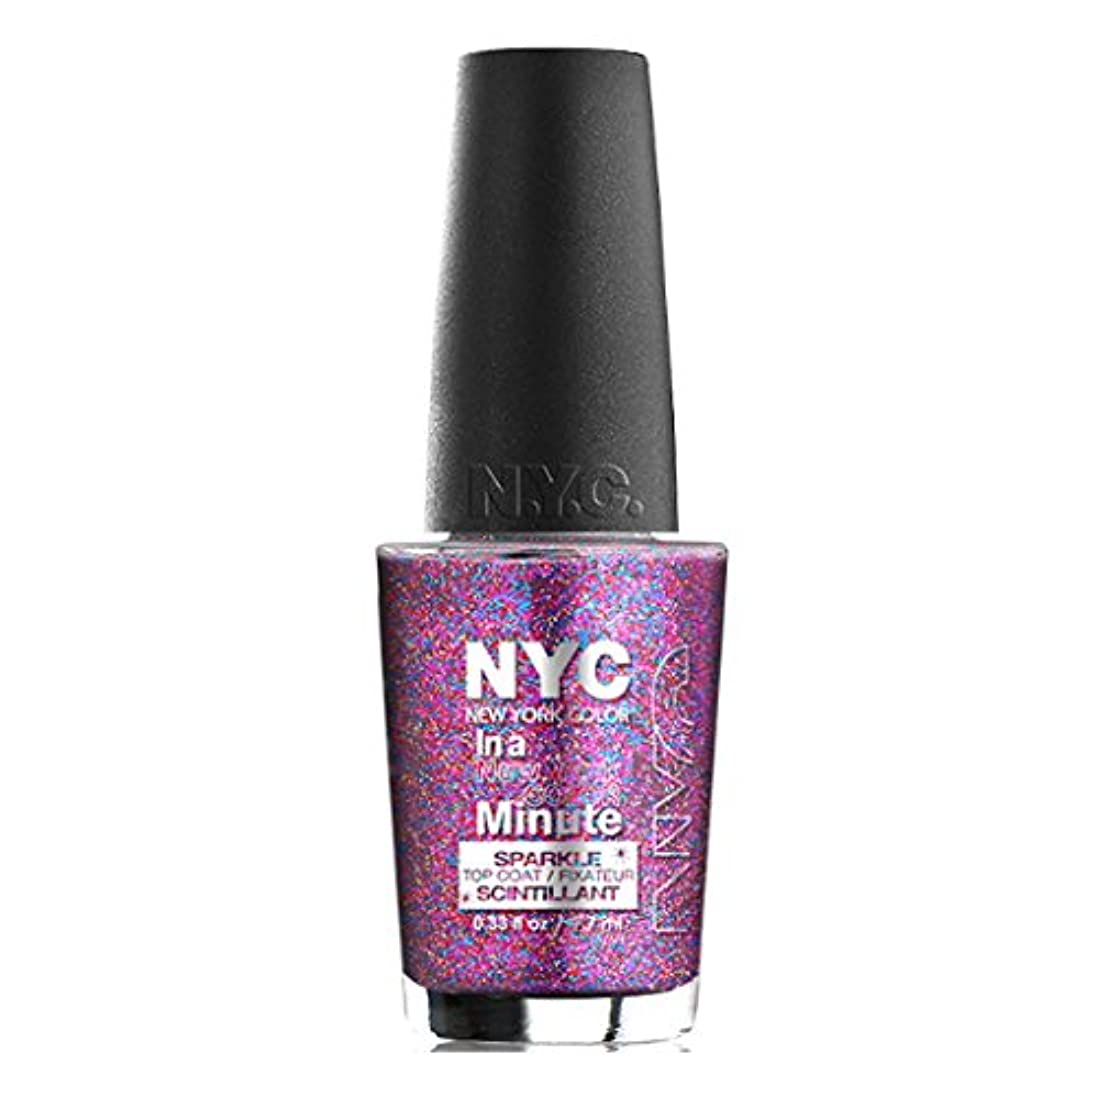 ゆりかご腕モットーNYC In A New York Color Minute Sparkle Top Coat Big City Dazzle (並行輸入品)